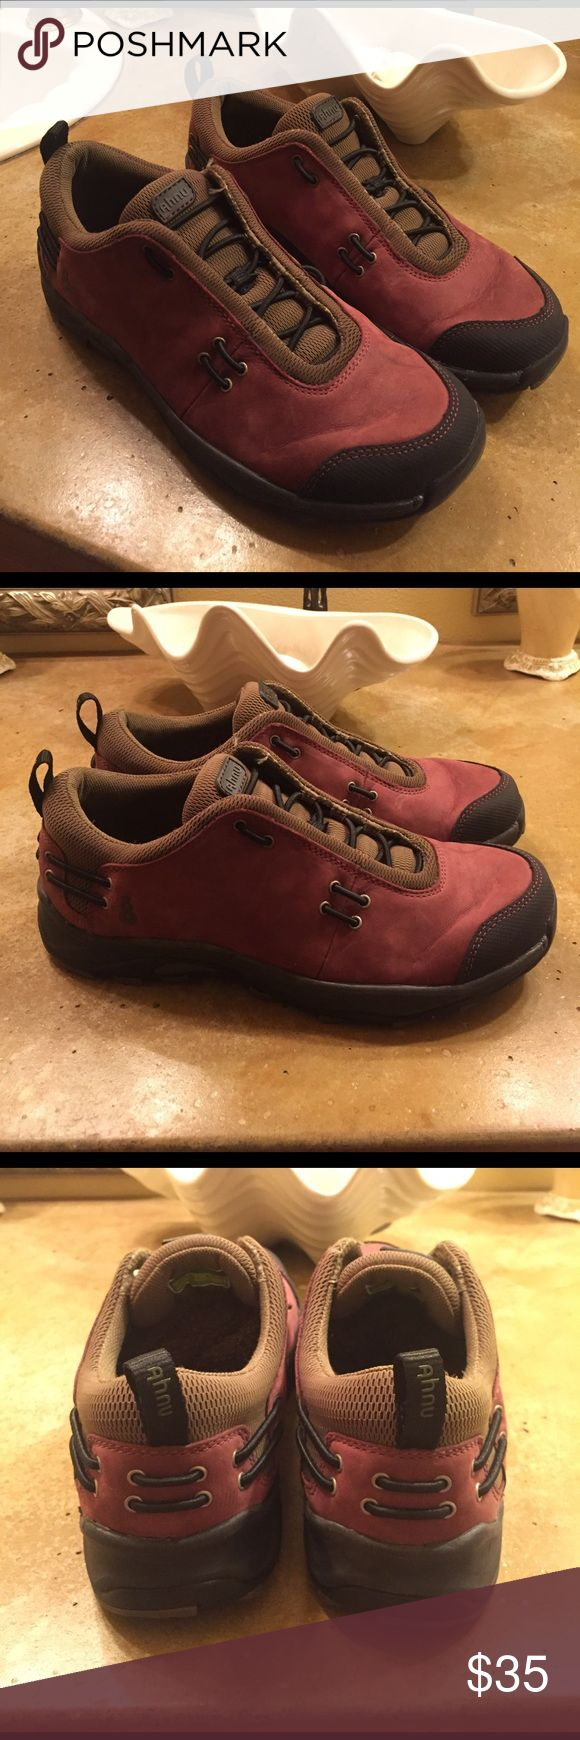 Flash Sale ⚡️Ahnu by Teva hiking shoes 7.5 Ahnu hiking shoes 7 1/2 in a burgundy color leather uppers they are in perfect condition this brand is amazing and they make amazing footbeds with lots of room in the toes so they're perfect for hiking or walking anything you're going to do you will have happy feet Ahnu Shoes Athletic Shoes